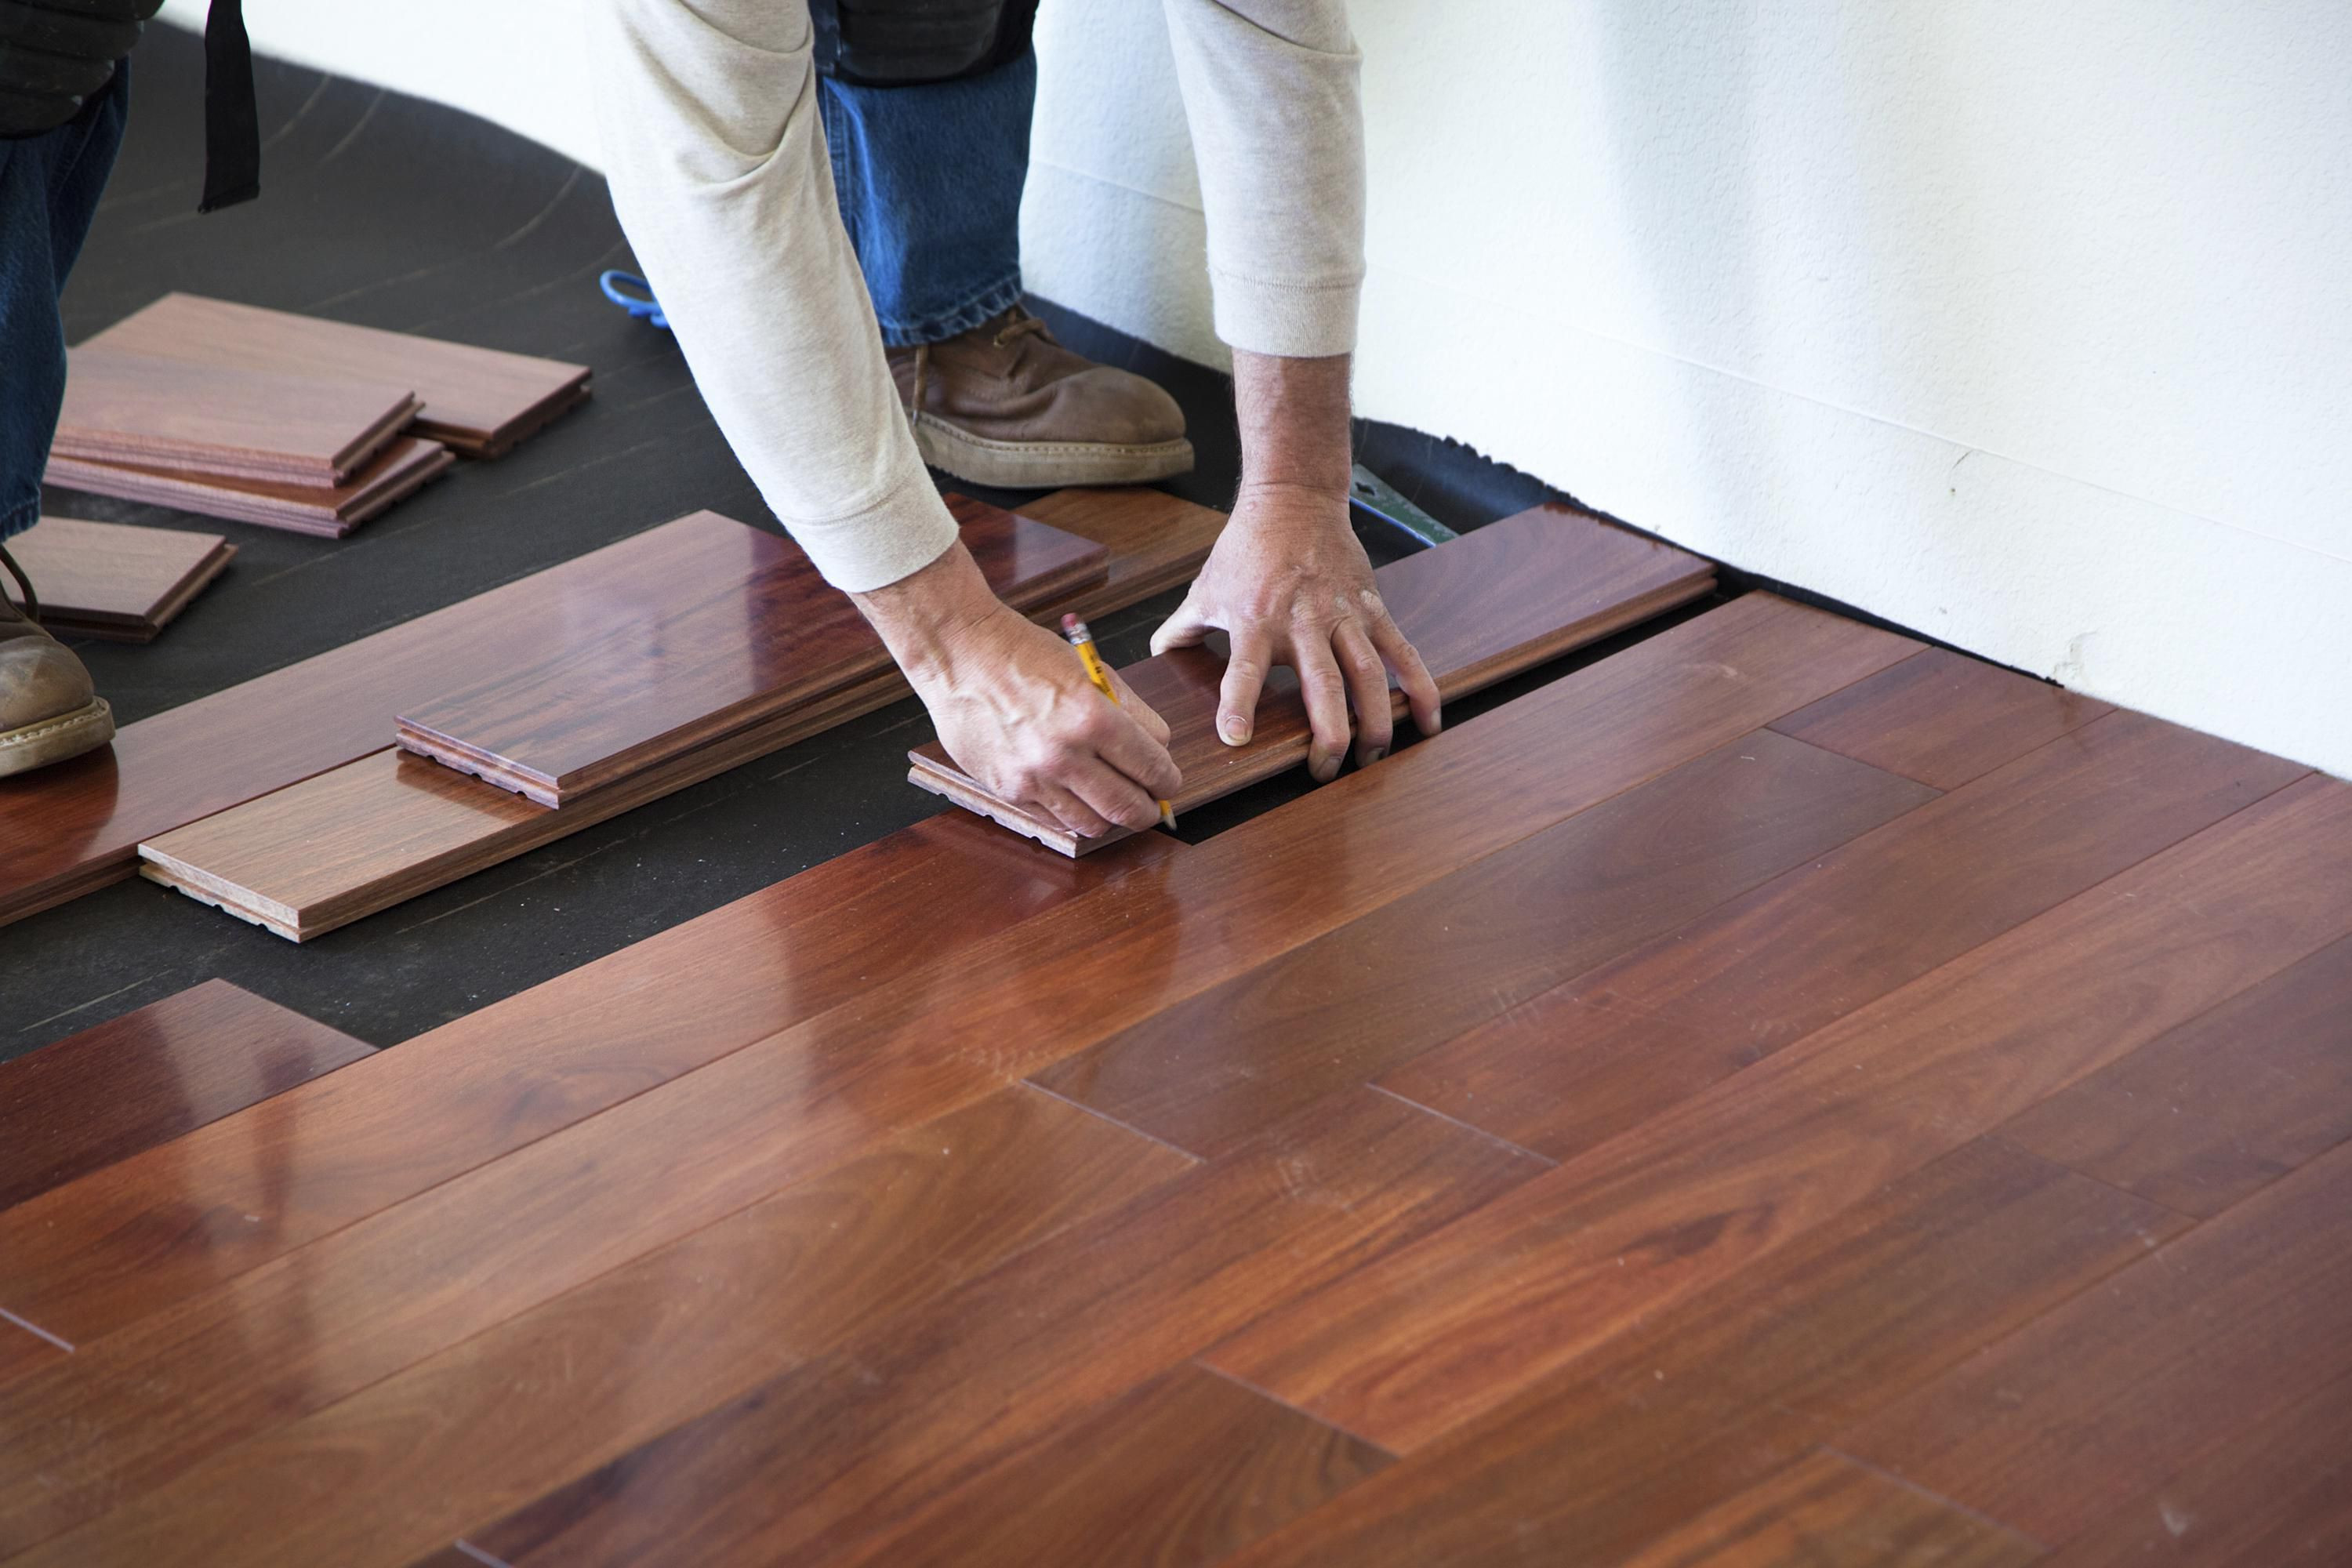 sanding hardwood floors by hand of this is how much hardwood flooring to order for 170040982 56a49f213df78cf772834e21